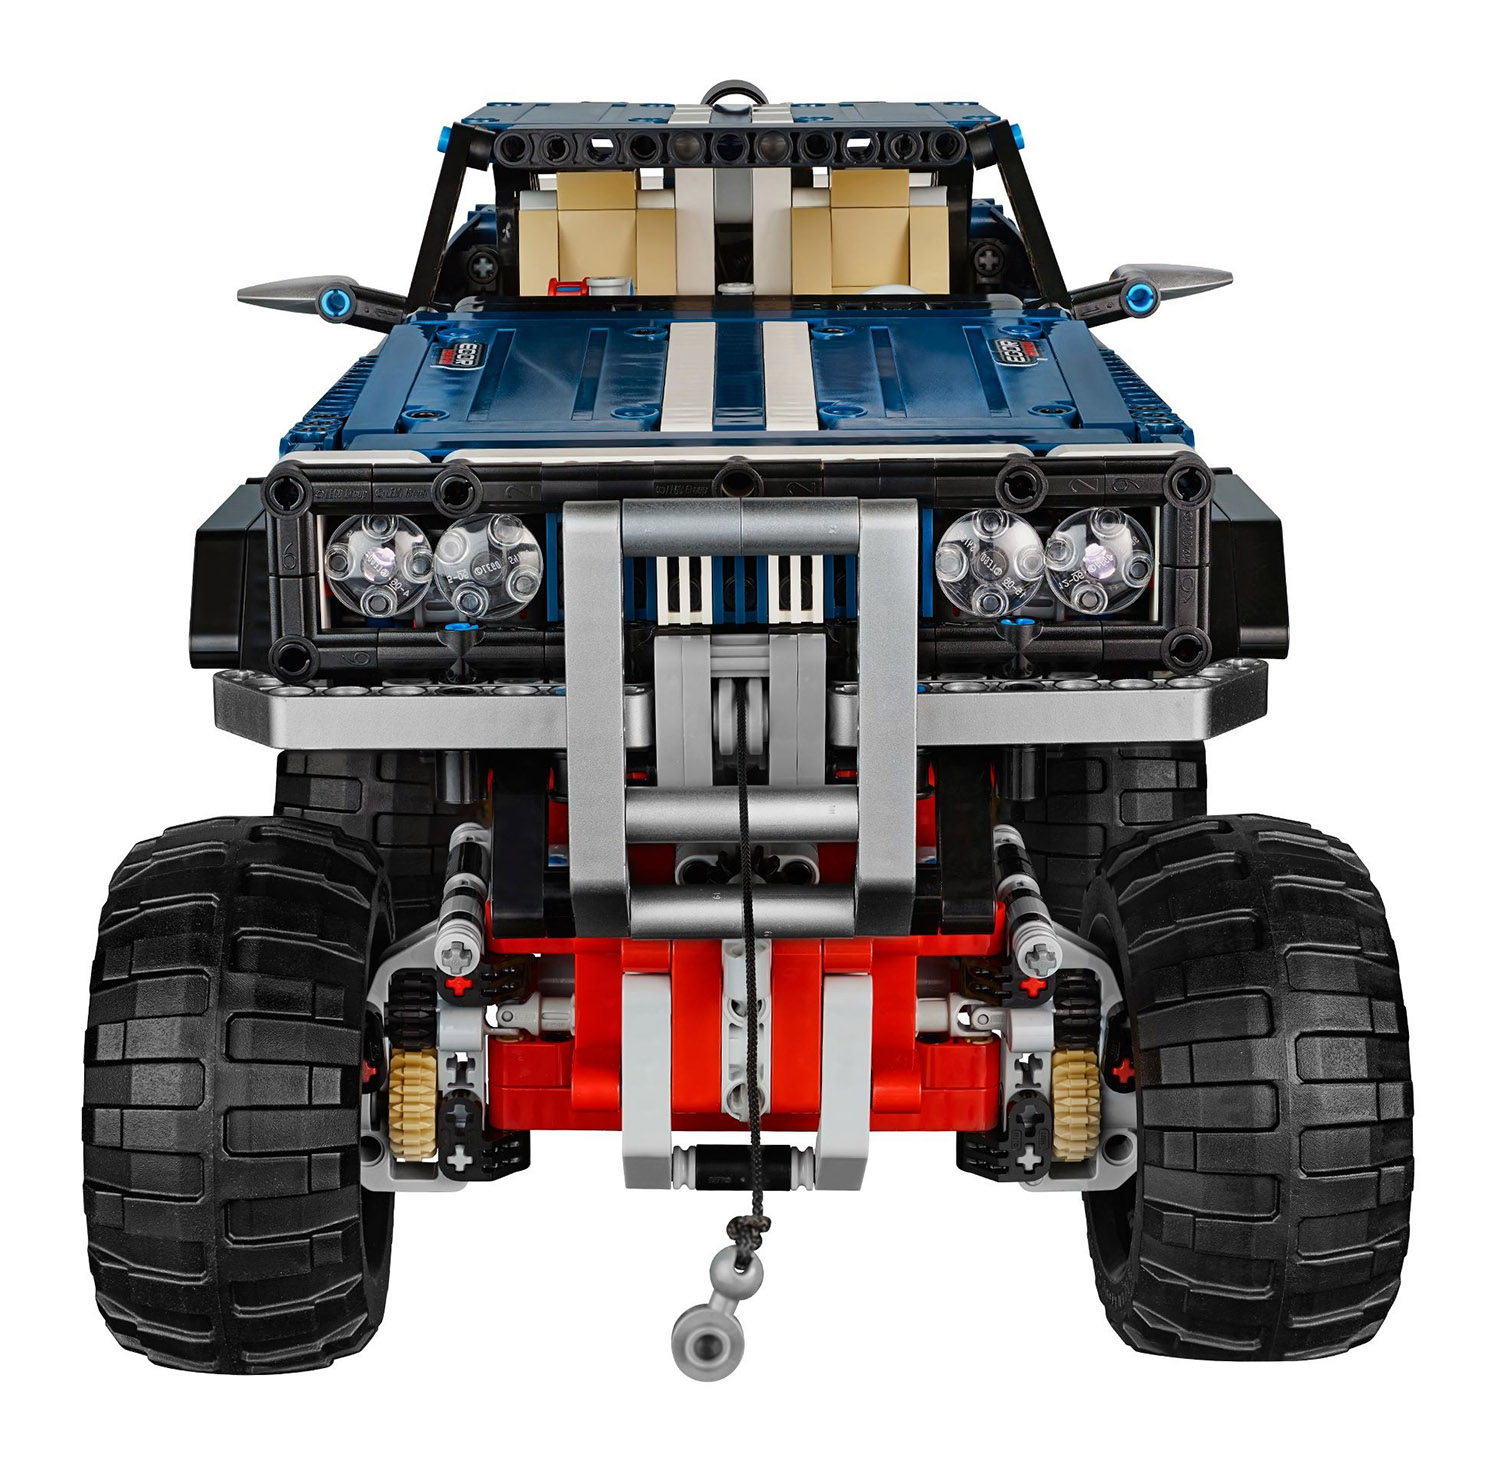 lego technic 41999 pas cher 4x4 crawler exclusive edition. Black Bedroom Furniture Sets. Home Design Ideas